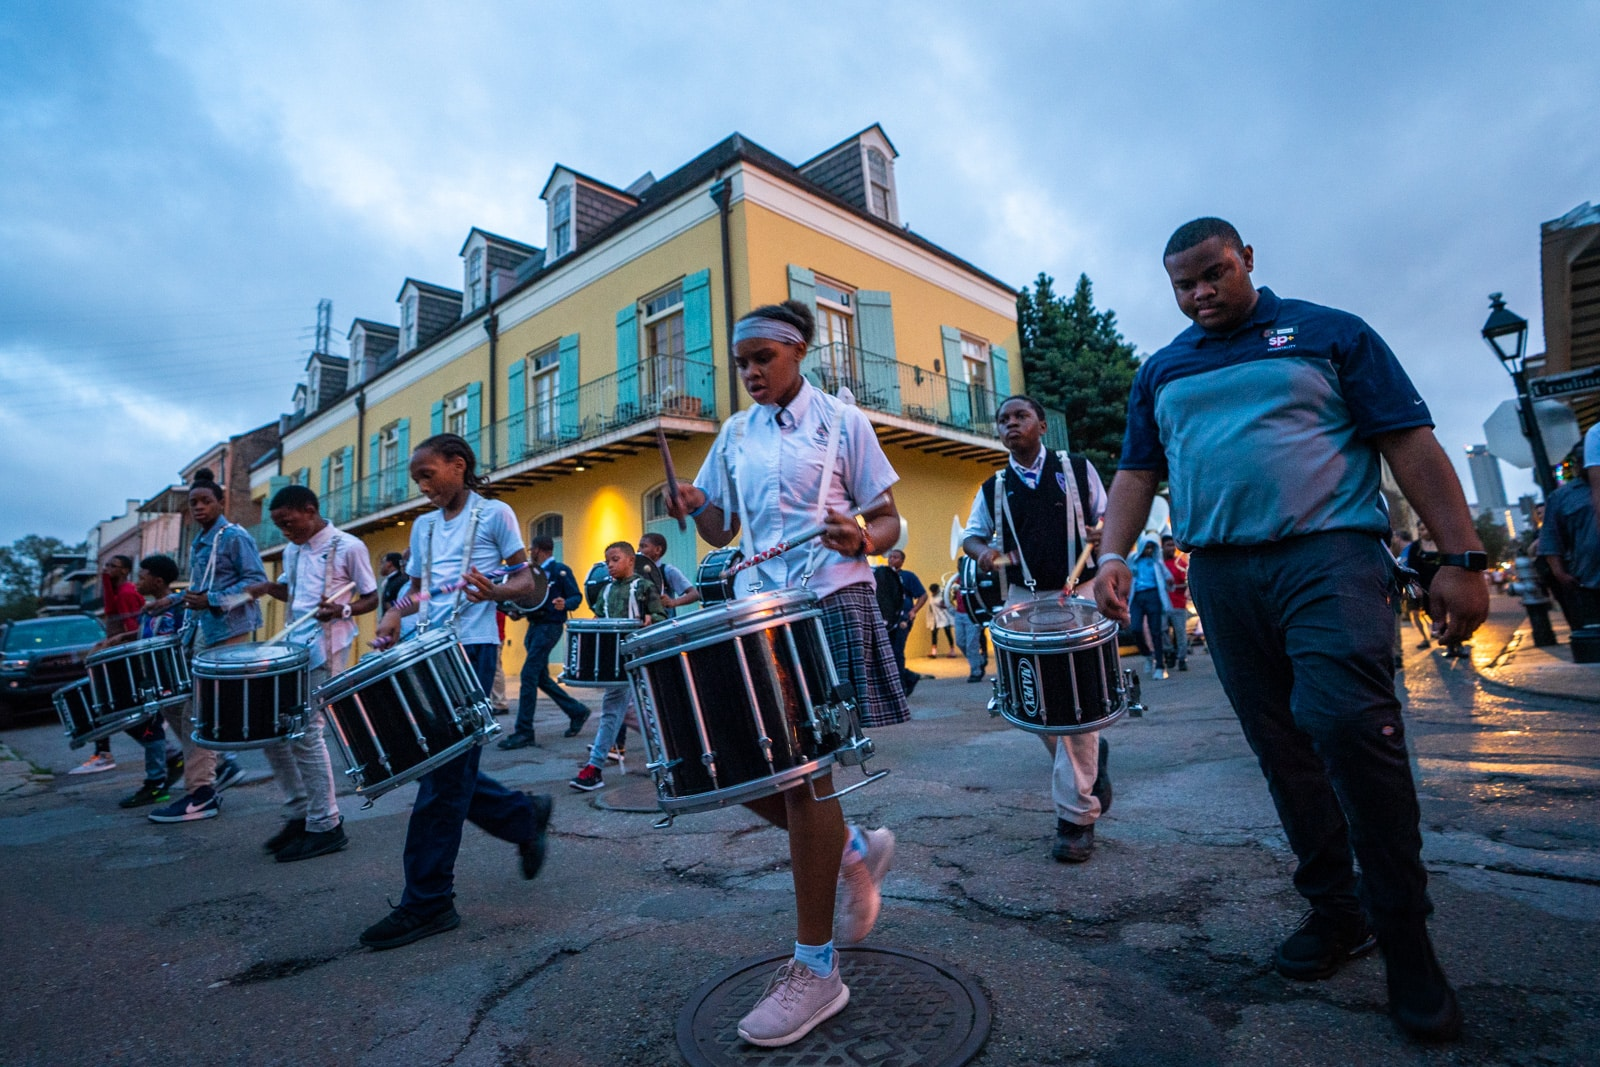 School kids marching band practicing in the French Quarter of New Orleans for Mardi Gras